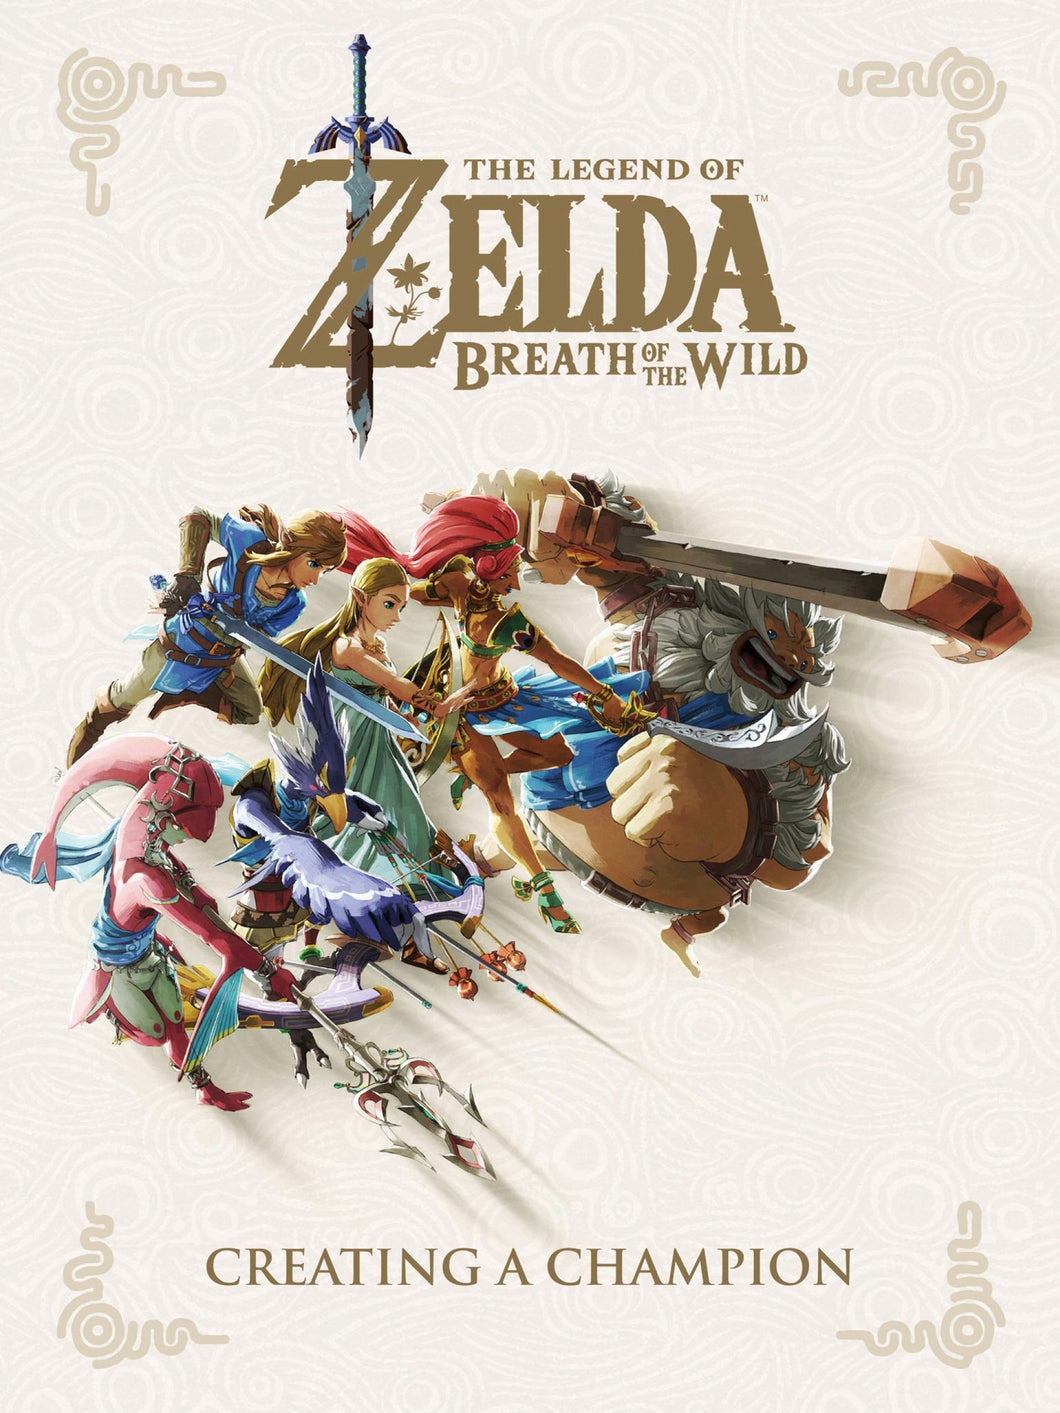 The Legend of Zelda: Breath of the Wild, Creating a Champion - eBook, (Phone, Tablet, Computer) Fast Instant delivery